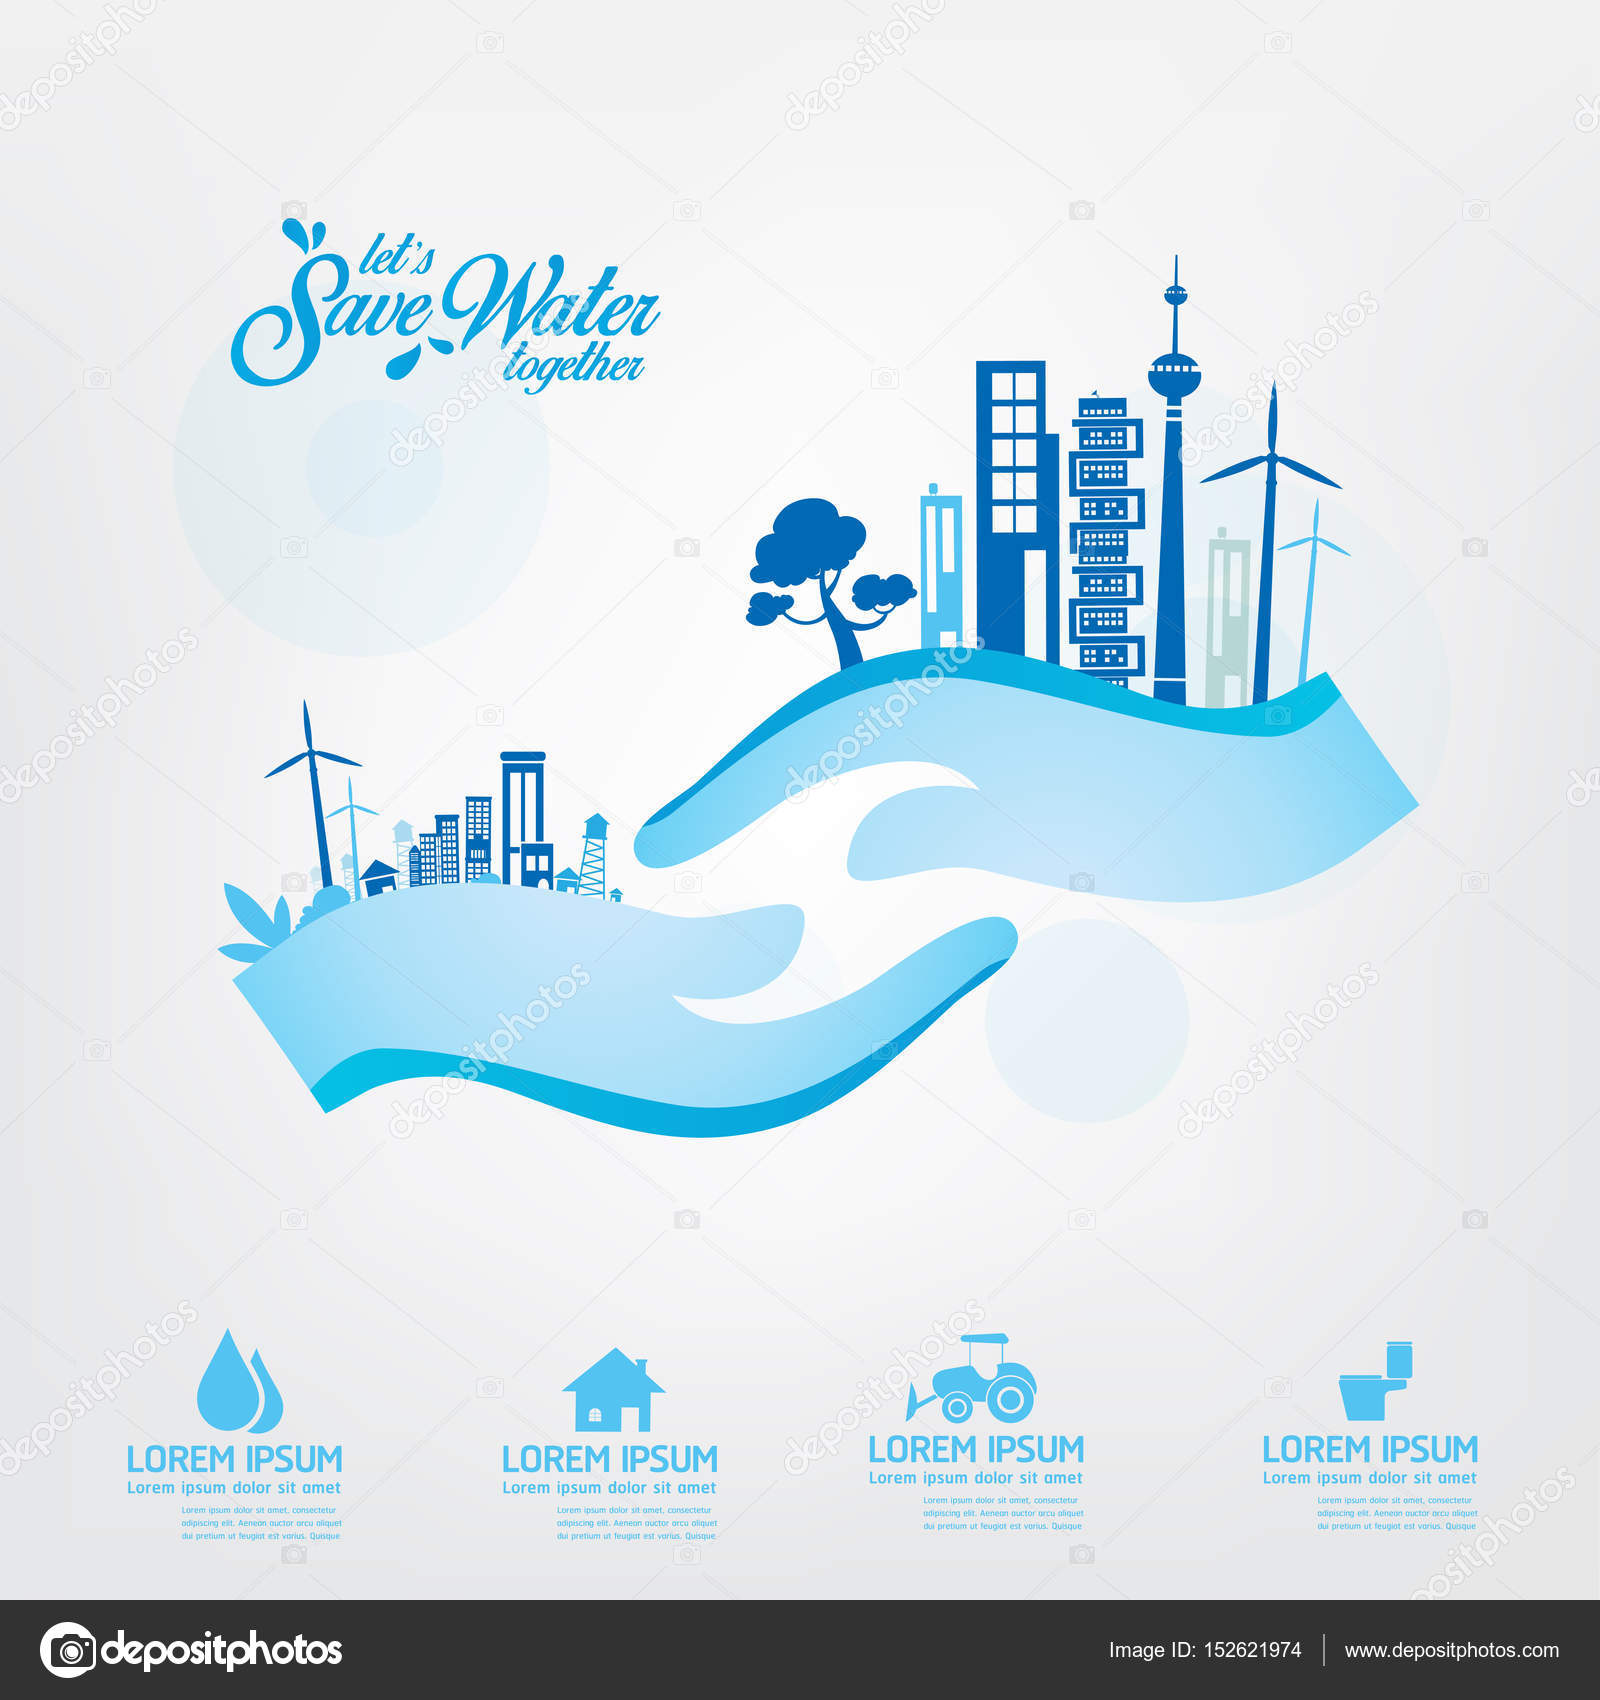 Save Water Template Concept Stock Vector C Space Vector 152621974